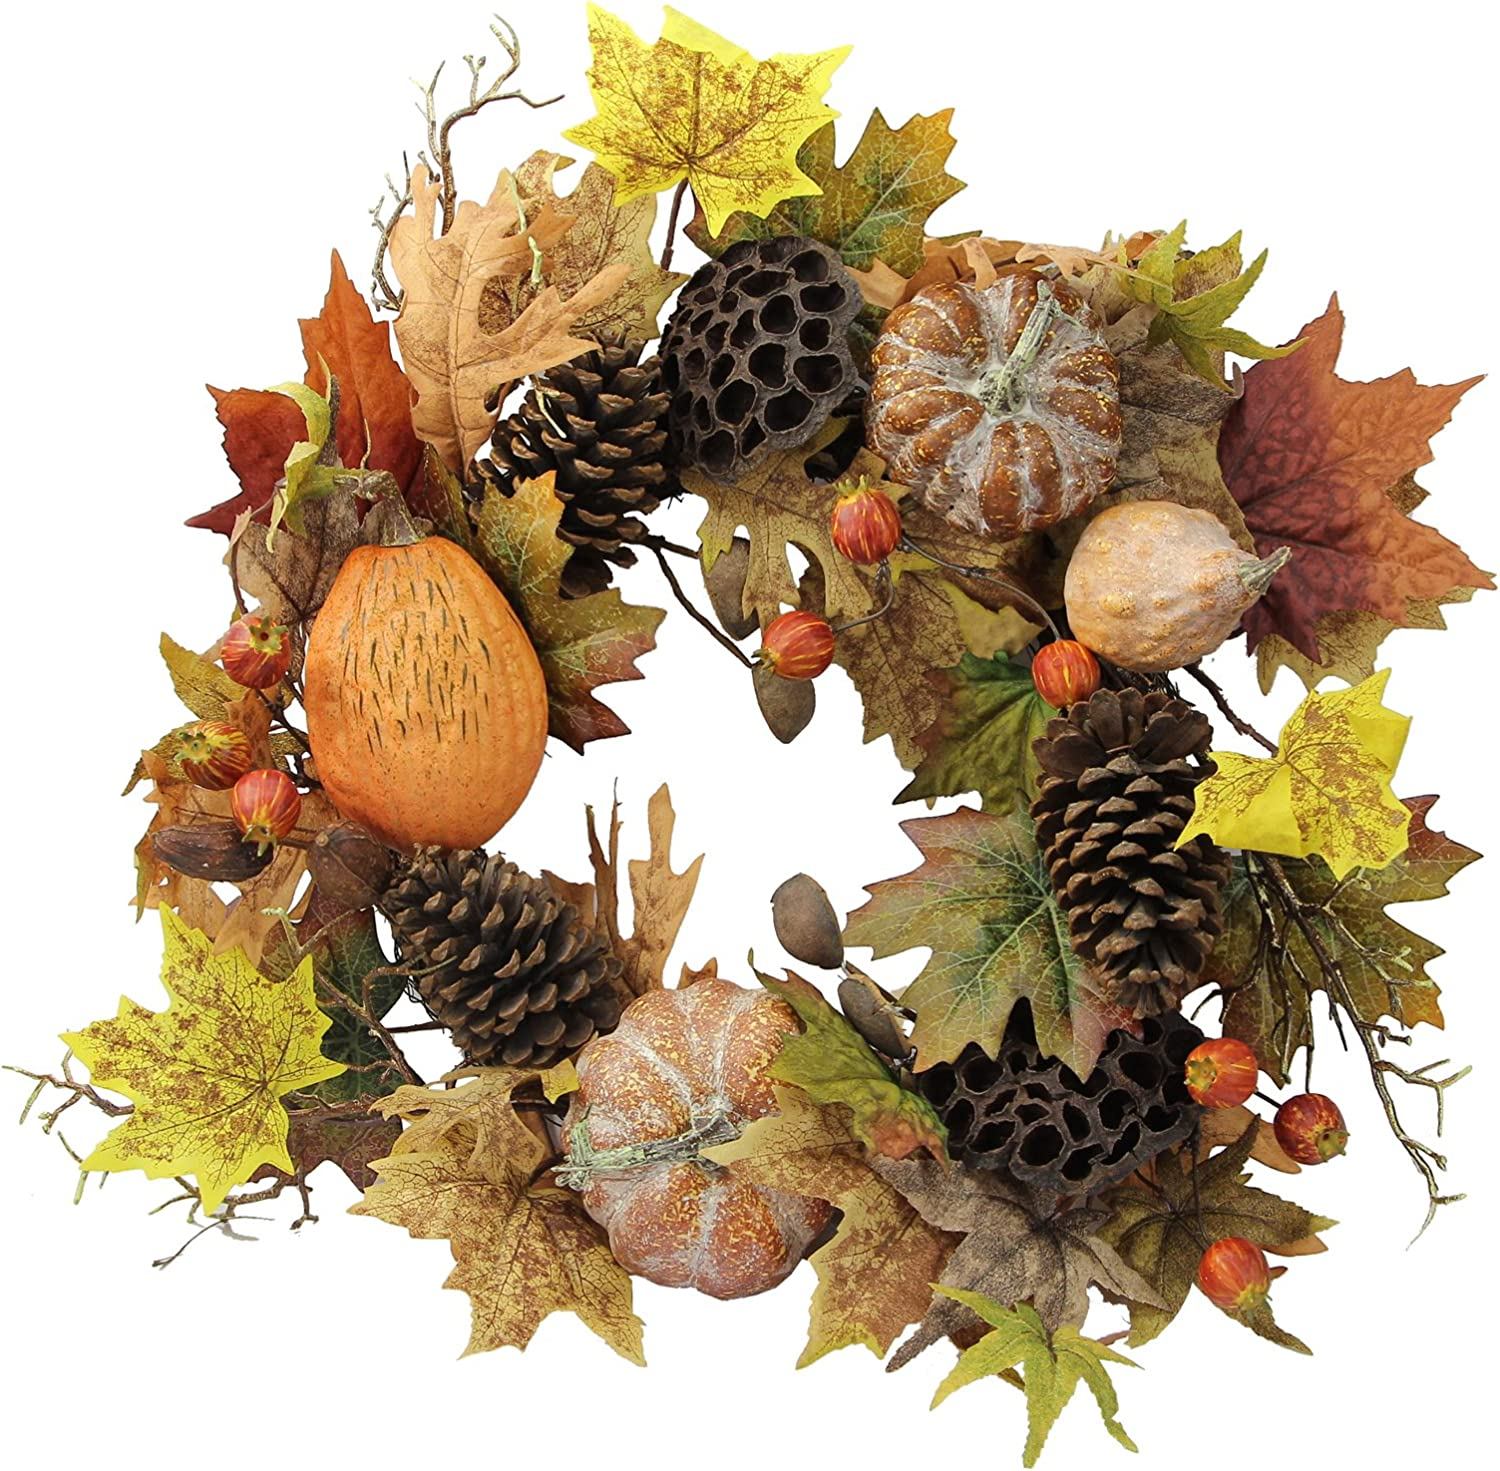 """Admired By Nature GFW6010-NATURAL Artificial Lotus Pod/Pumpkins/Pine Cone/Maple Leaves/Berries Fall Festive Harvest Display Wreath, 24"""", Autumn"""